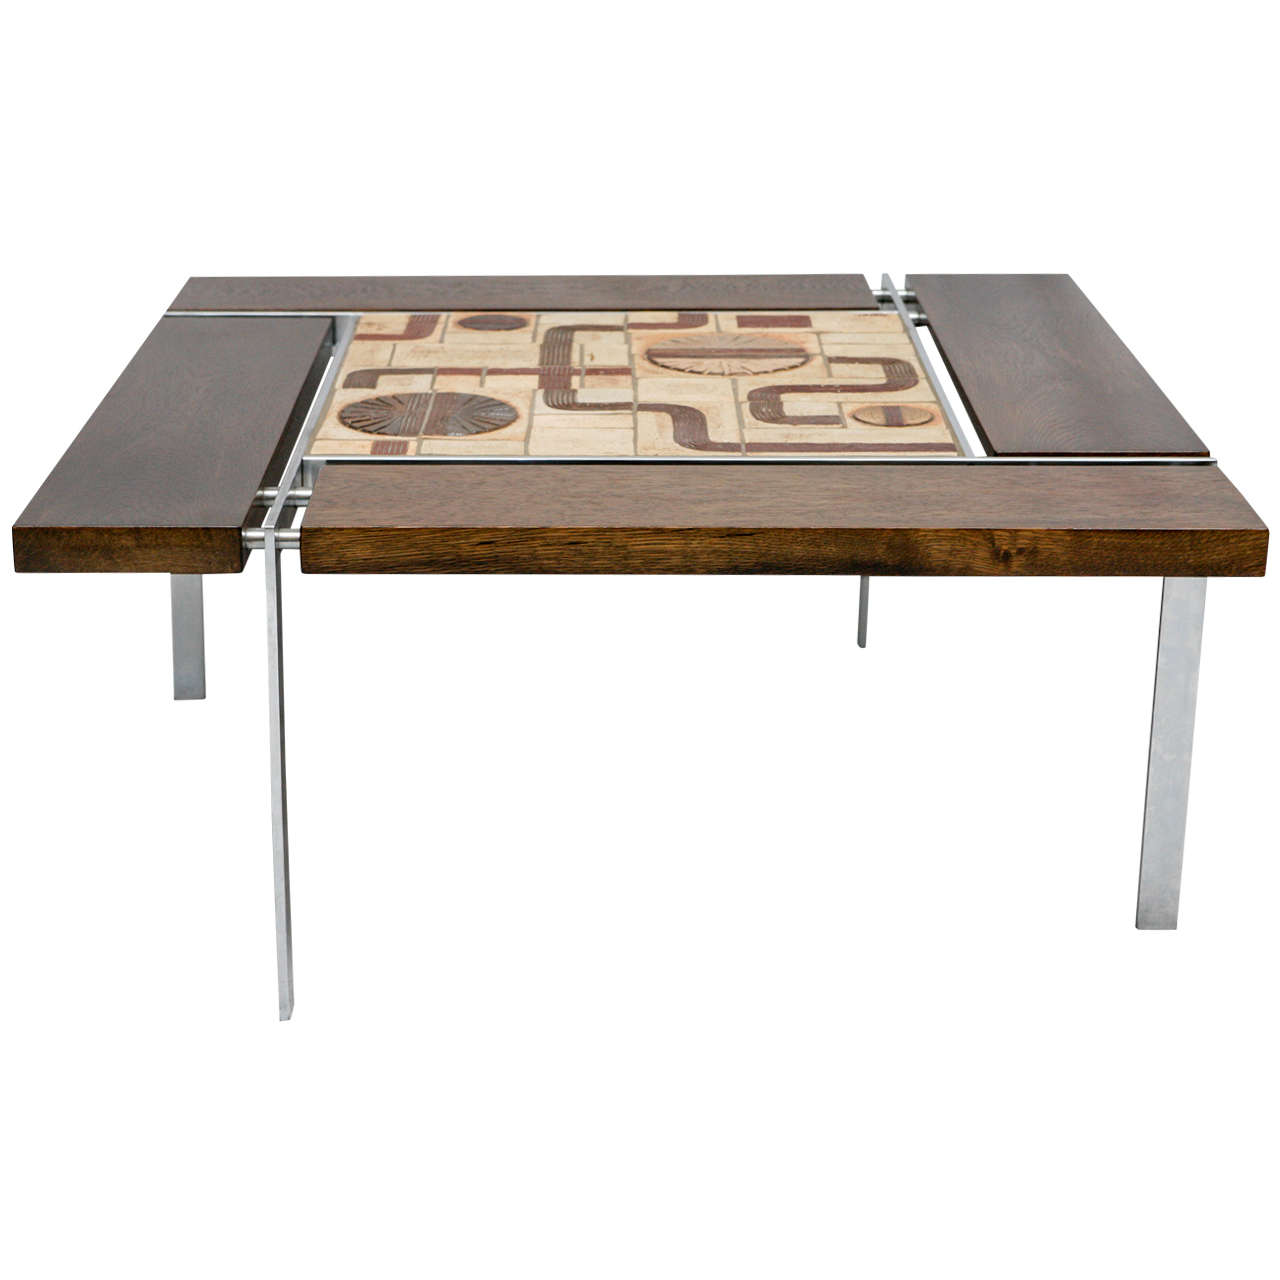 Danish tile top coffee table for sale at 1stdibs danish tile top coffee table 1 geotapseo Choice Image